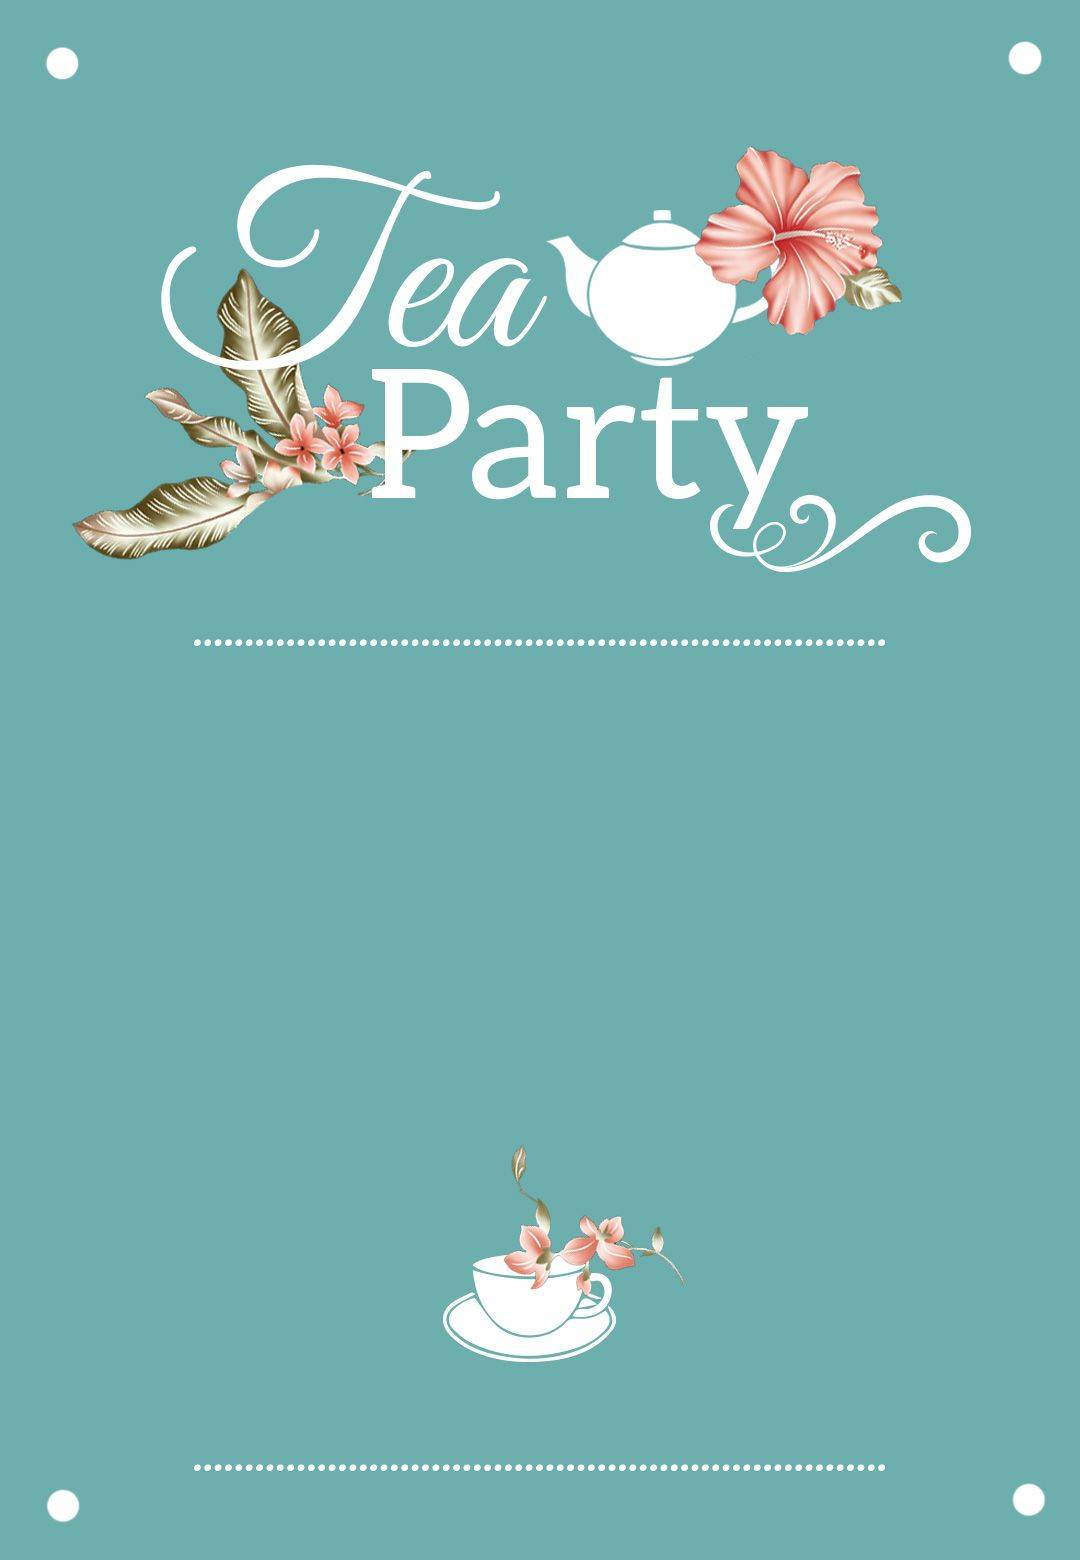 Tea Party Bridal Shower Invitation Template Free